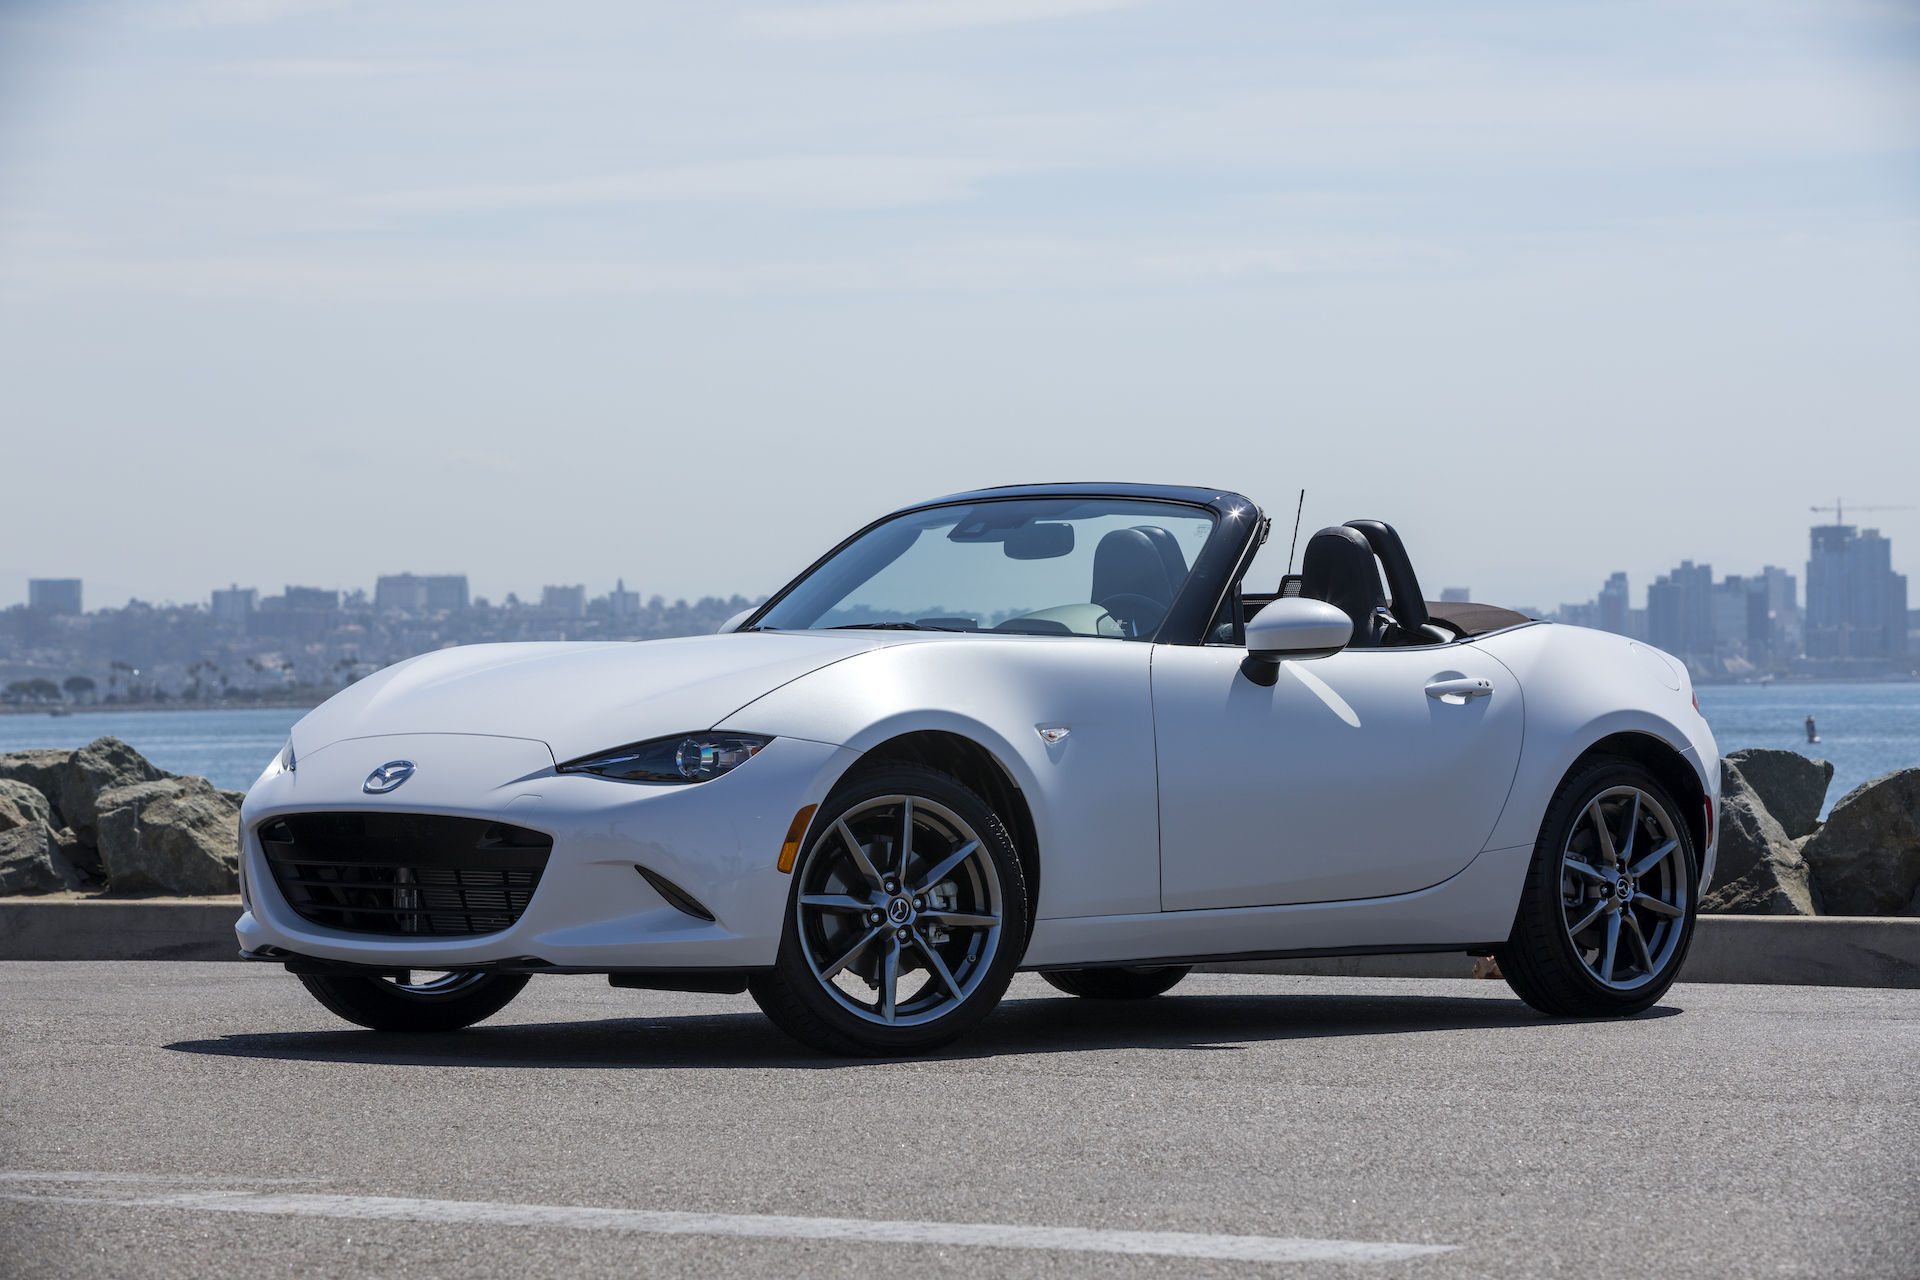 2019 mazda mx 5 miata first drive review the sports car mazda intended page 2. Black Bedroom Furniture Sets. Home Design Ideas